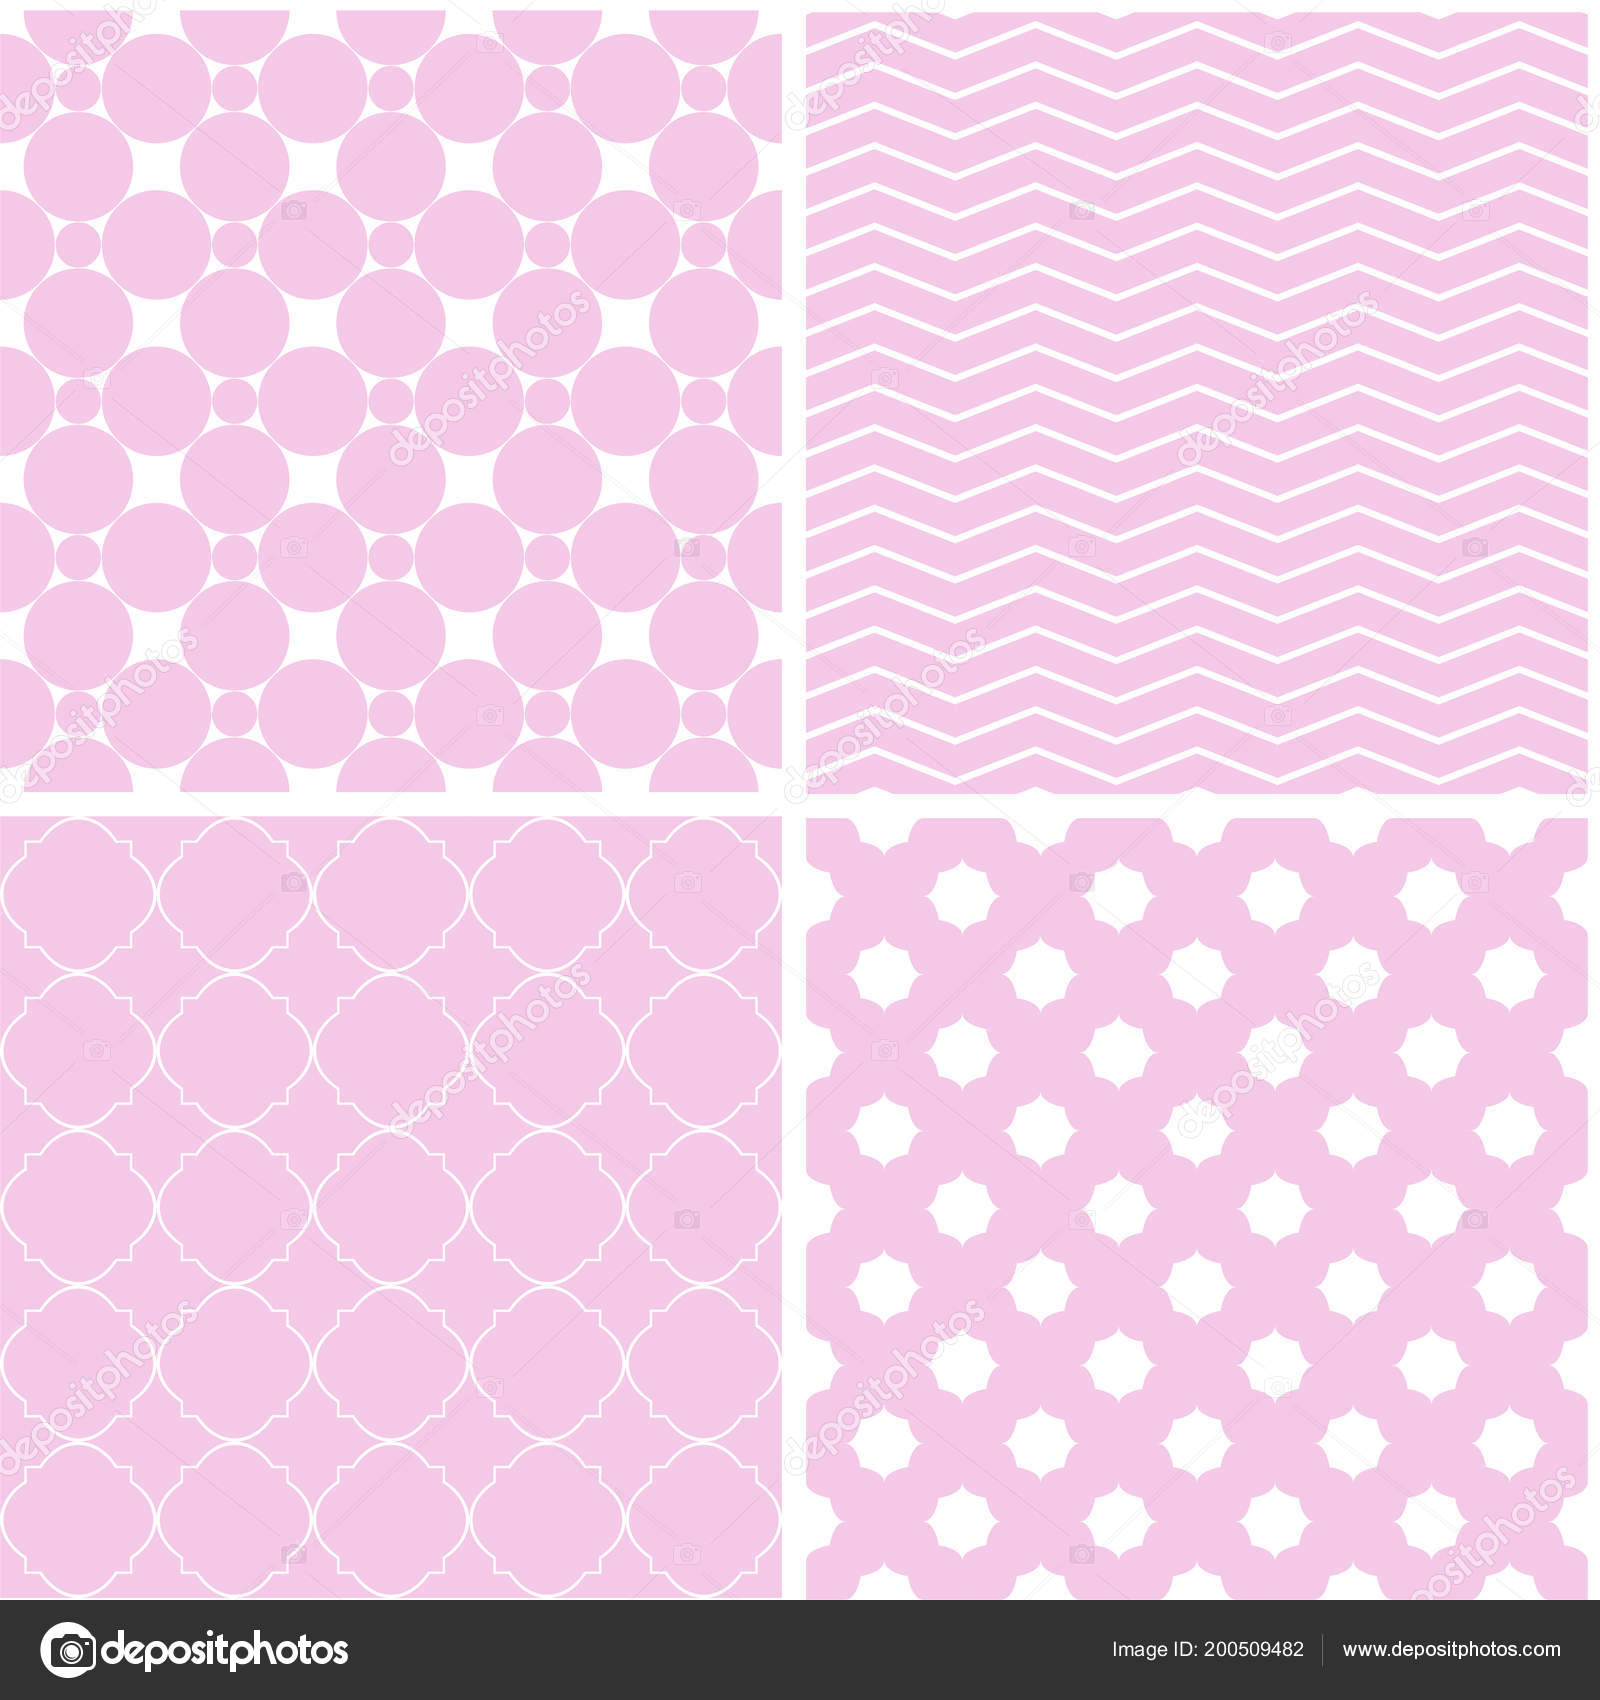 Different Seamless Patterns Ornament Retro Style